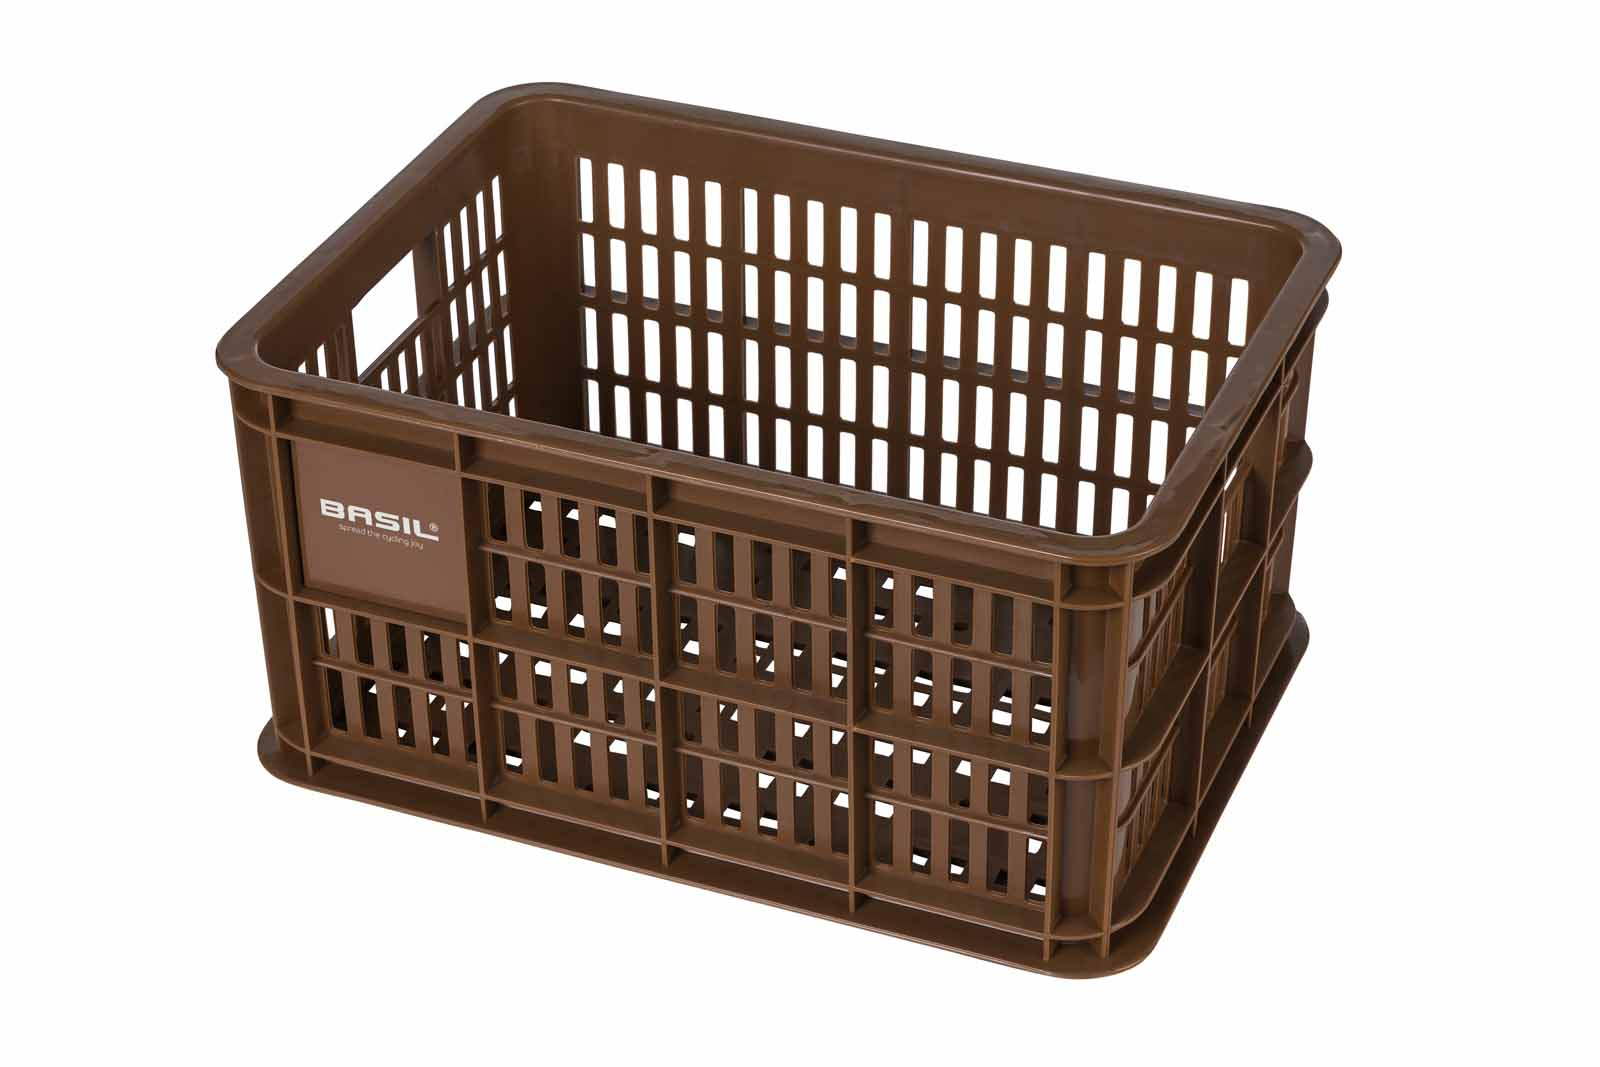 Basil V.R.-Korb Crate S MIK, saddle brown - Bild 2